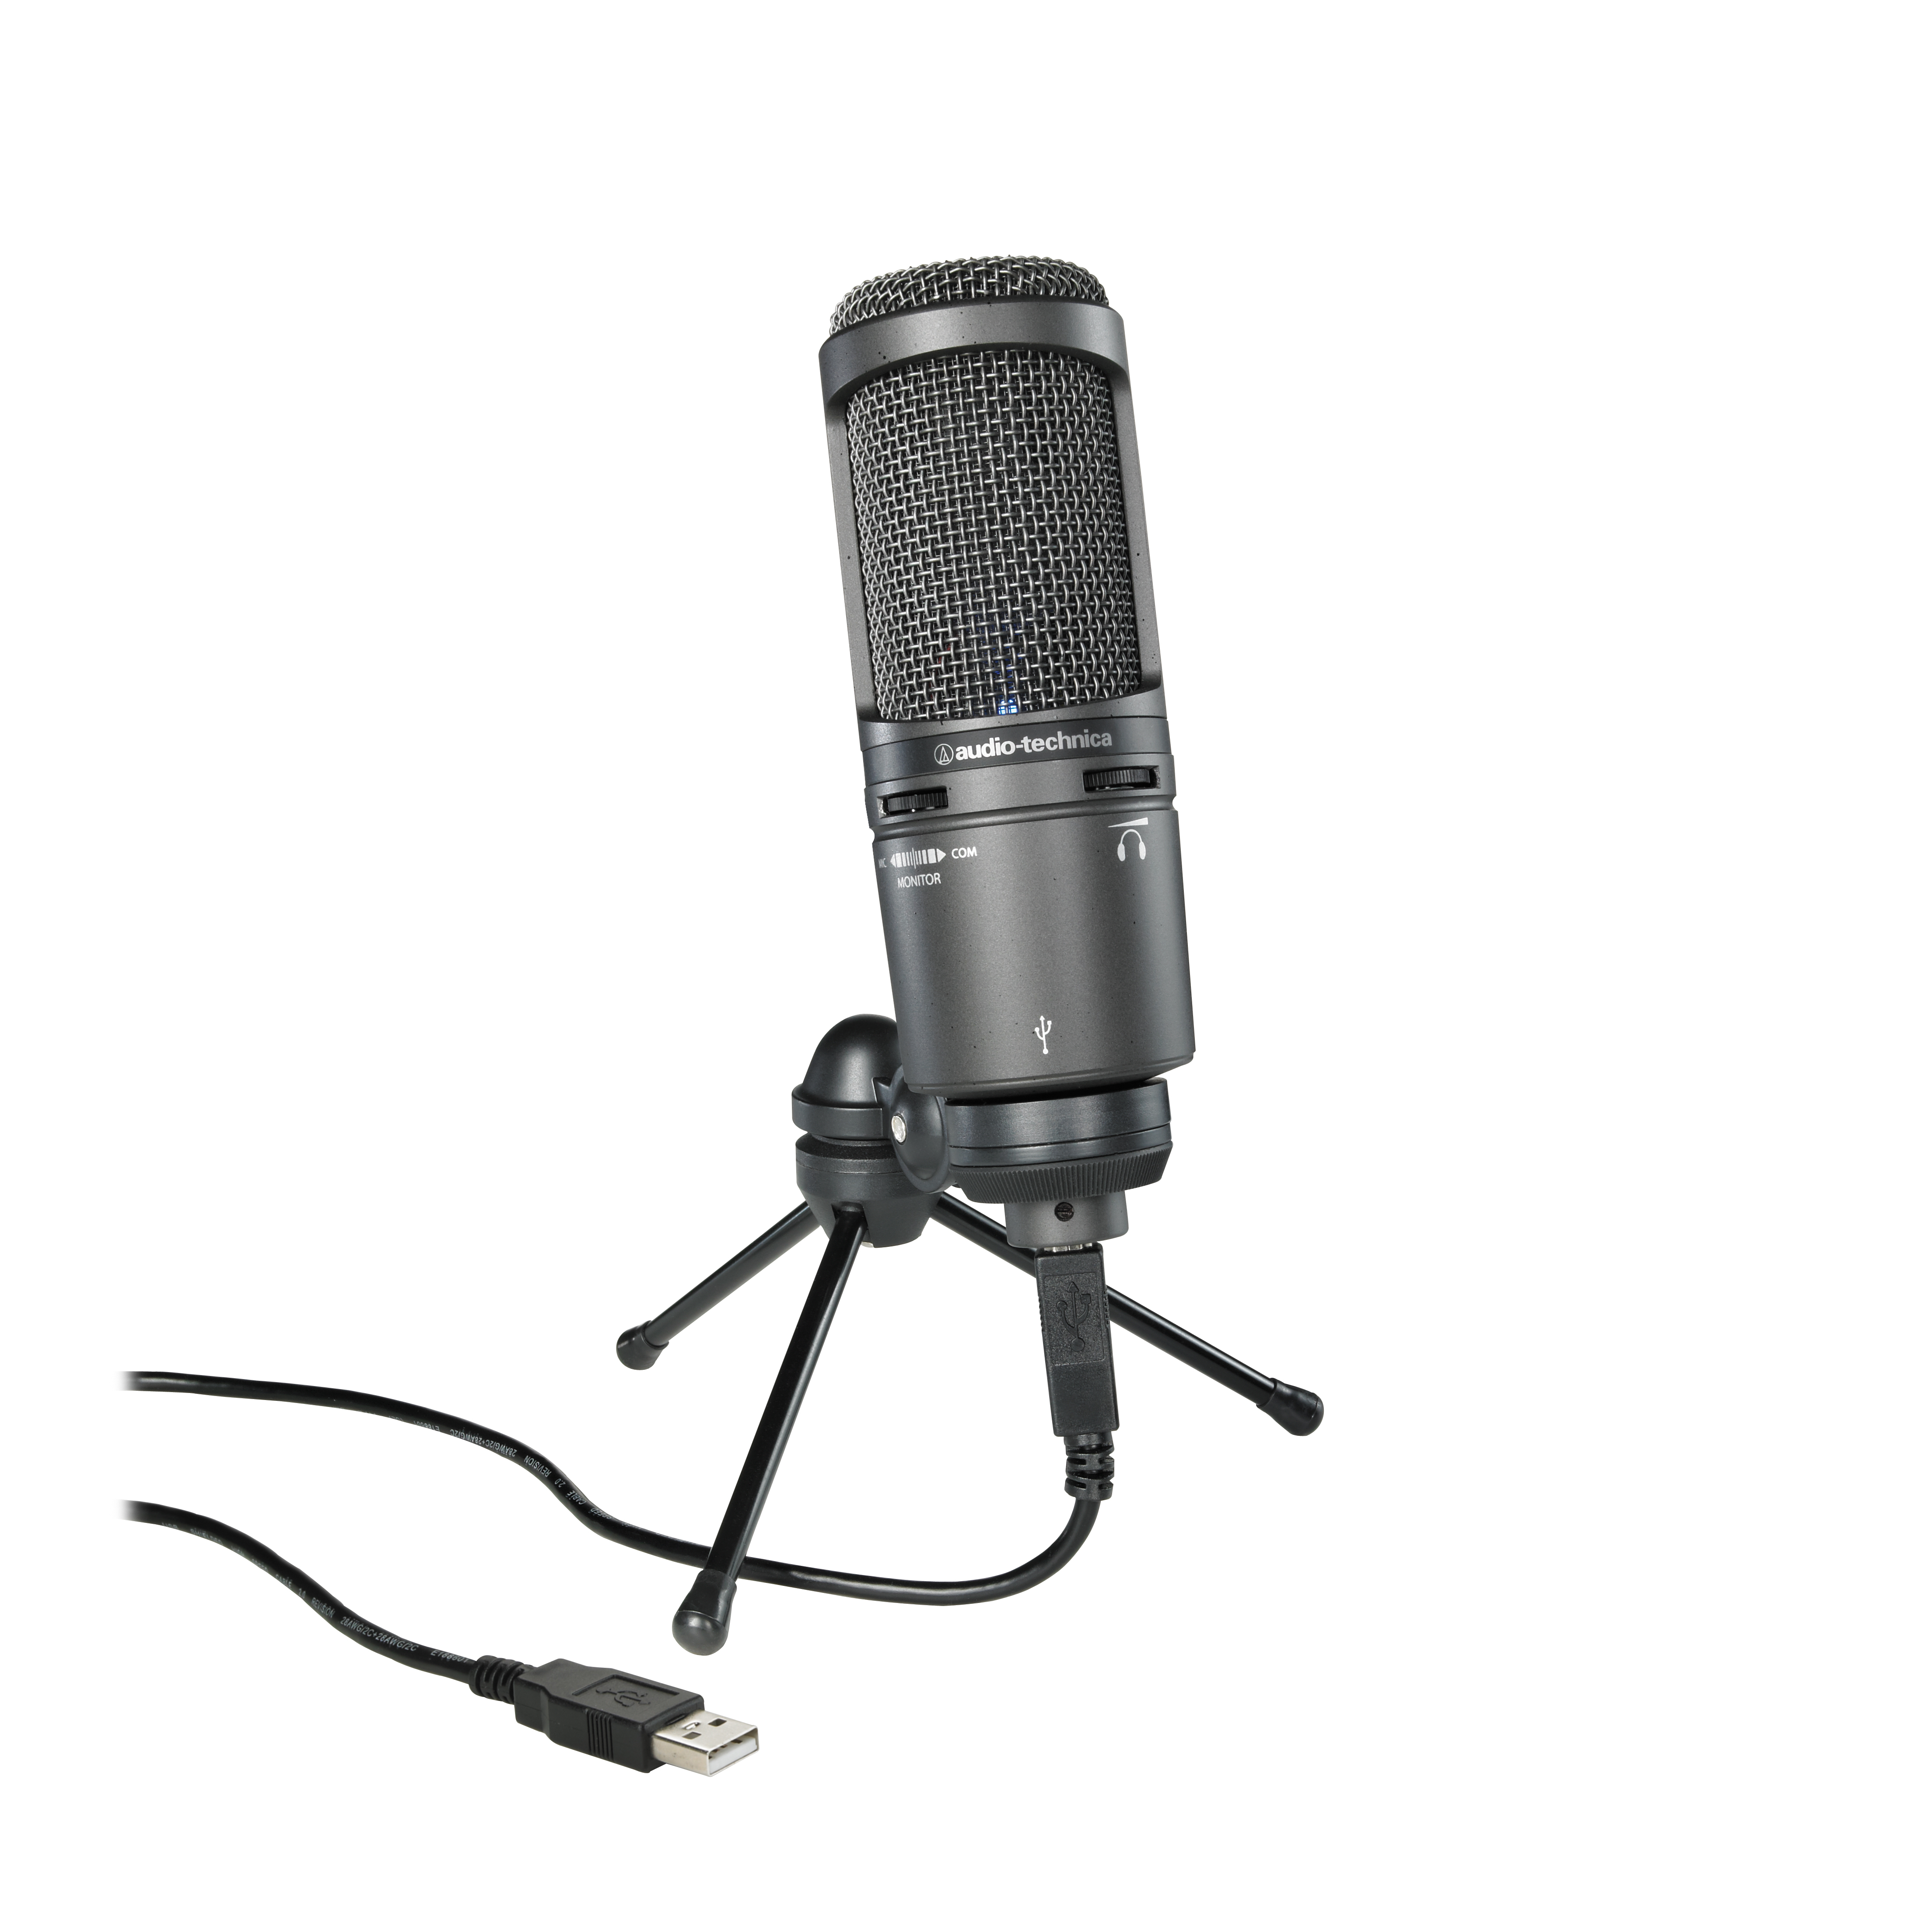 Audio-Technica AT2020 USB Plus Condenser Microphone by unknown